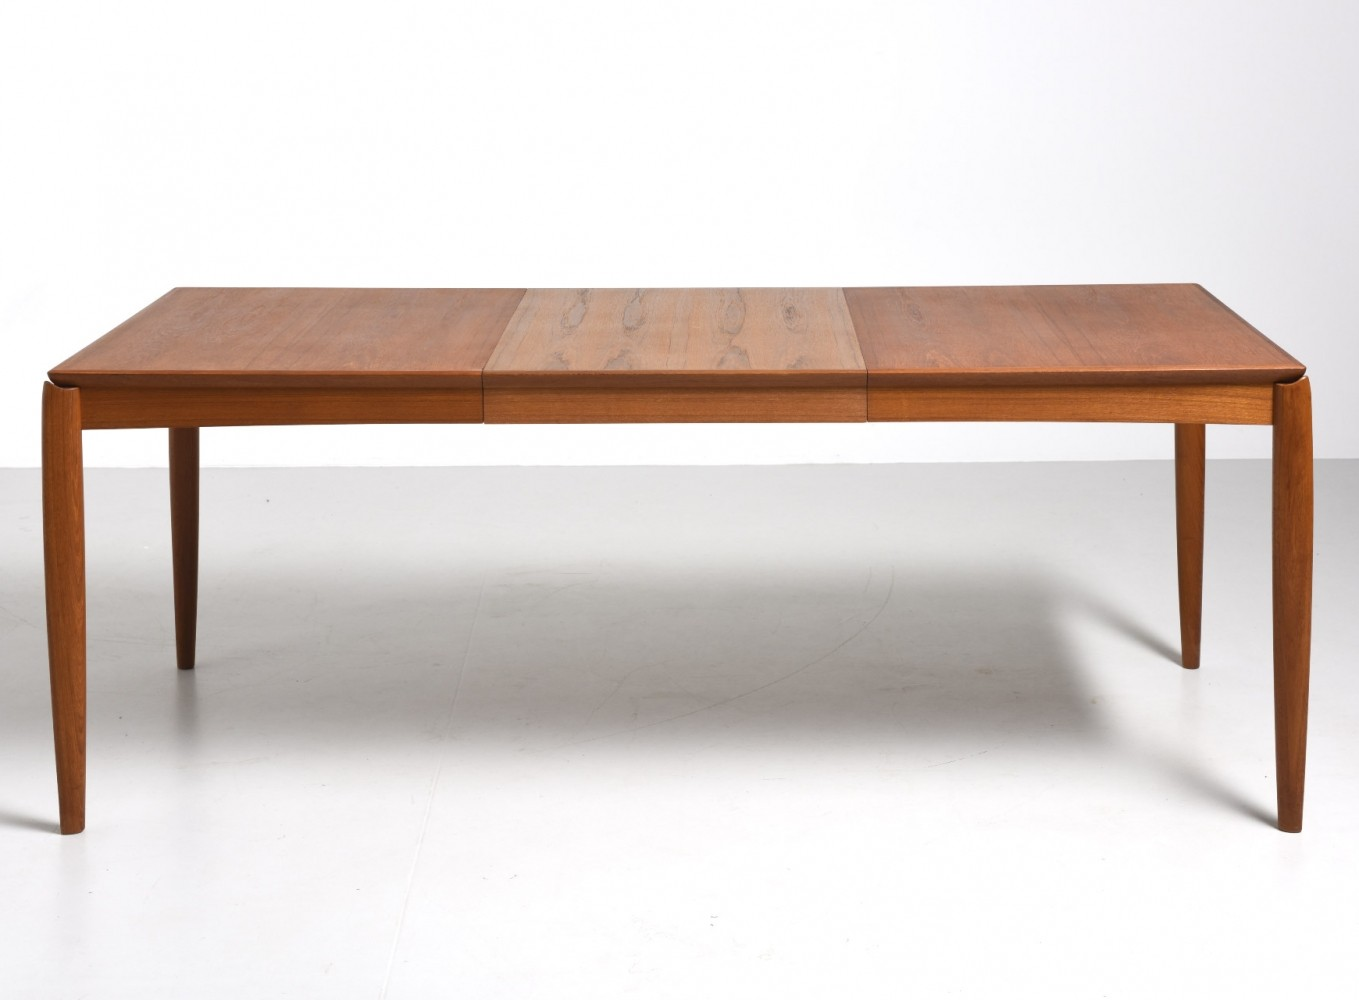 Dining Table By H.W.Klein For Bramin With 1 Extension, Teak